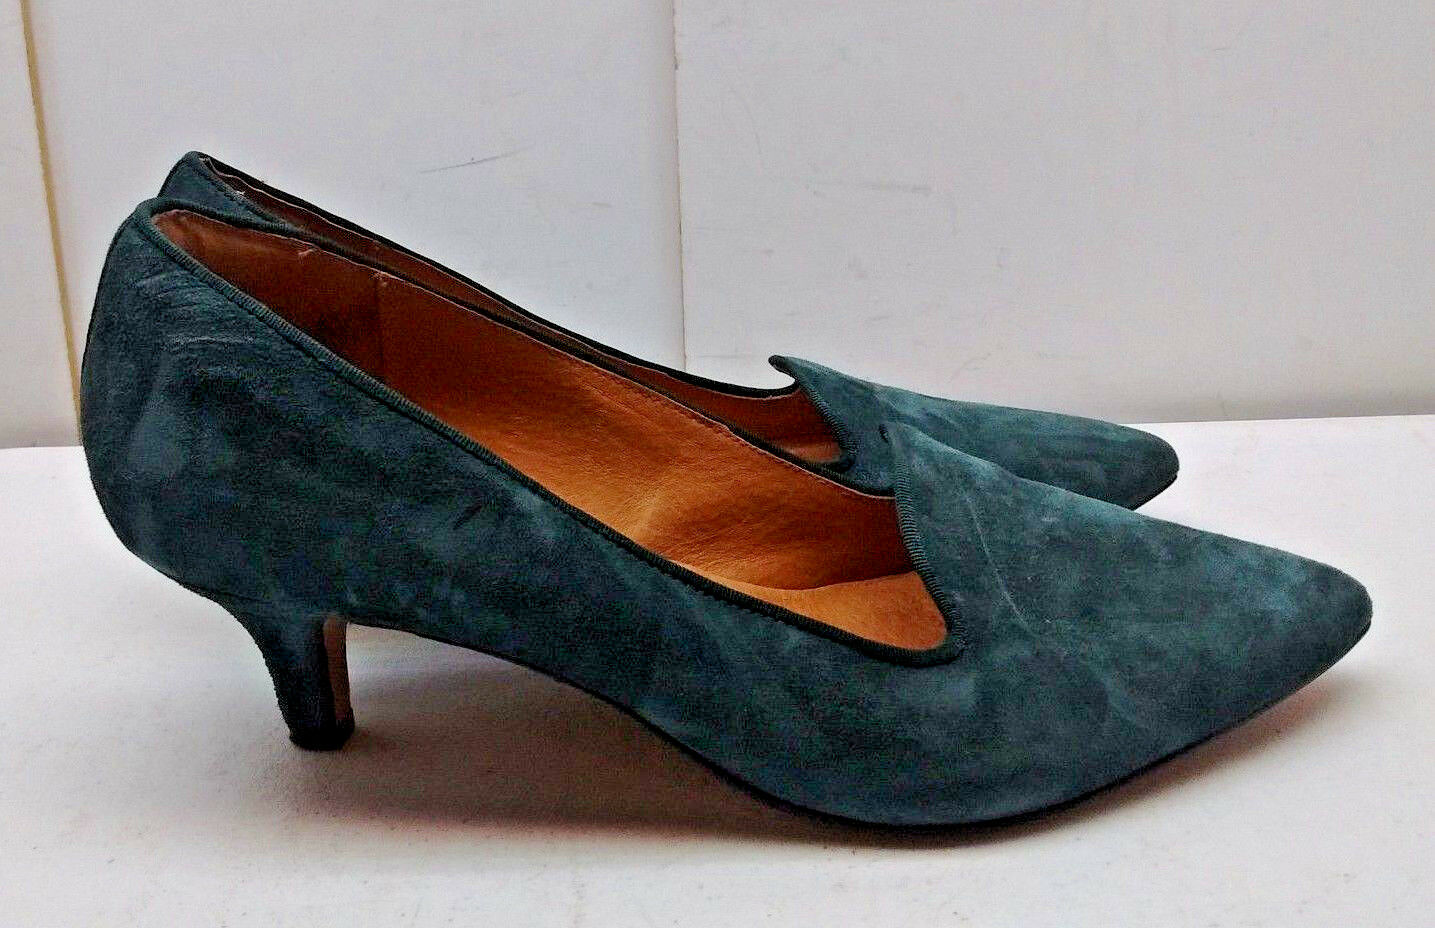 Clarks Indigo Dark Grün Leather Slip On On On Stiletto Heel Pump Dress damen schuhe 10M dd4b4d